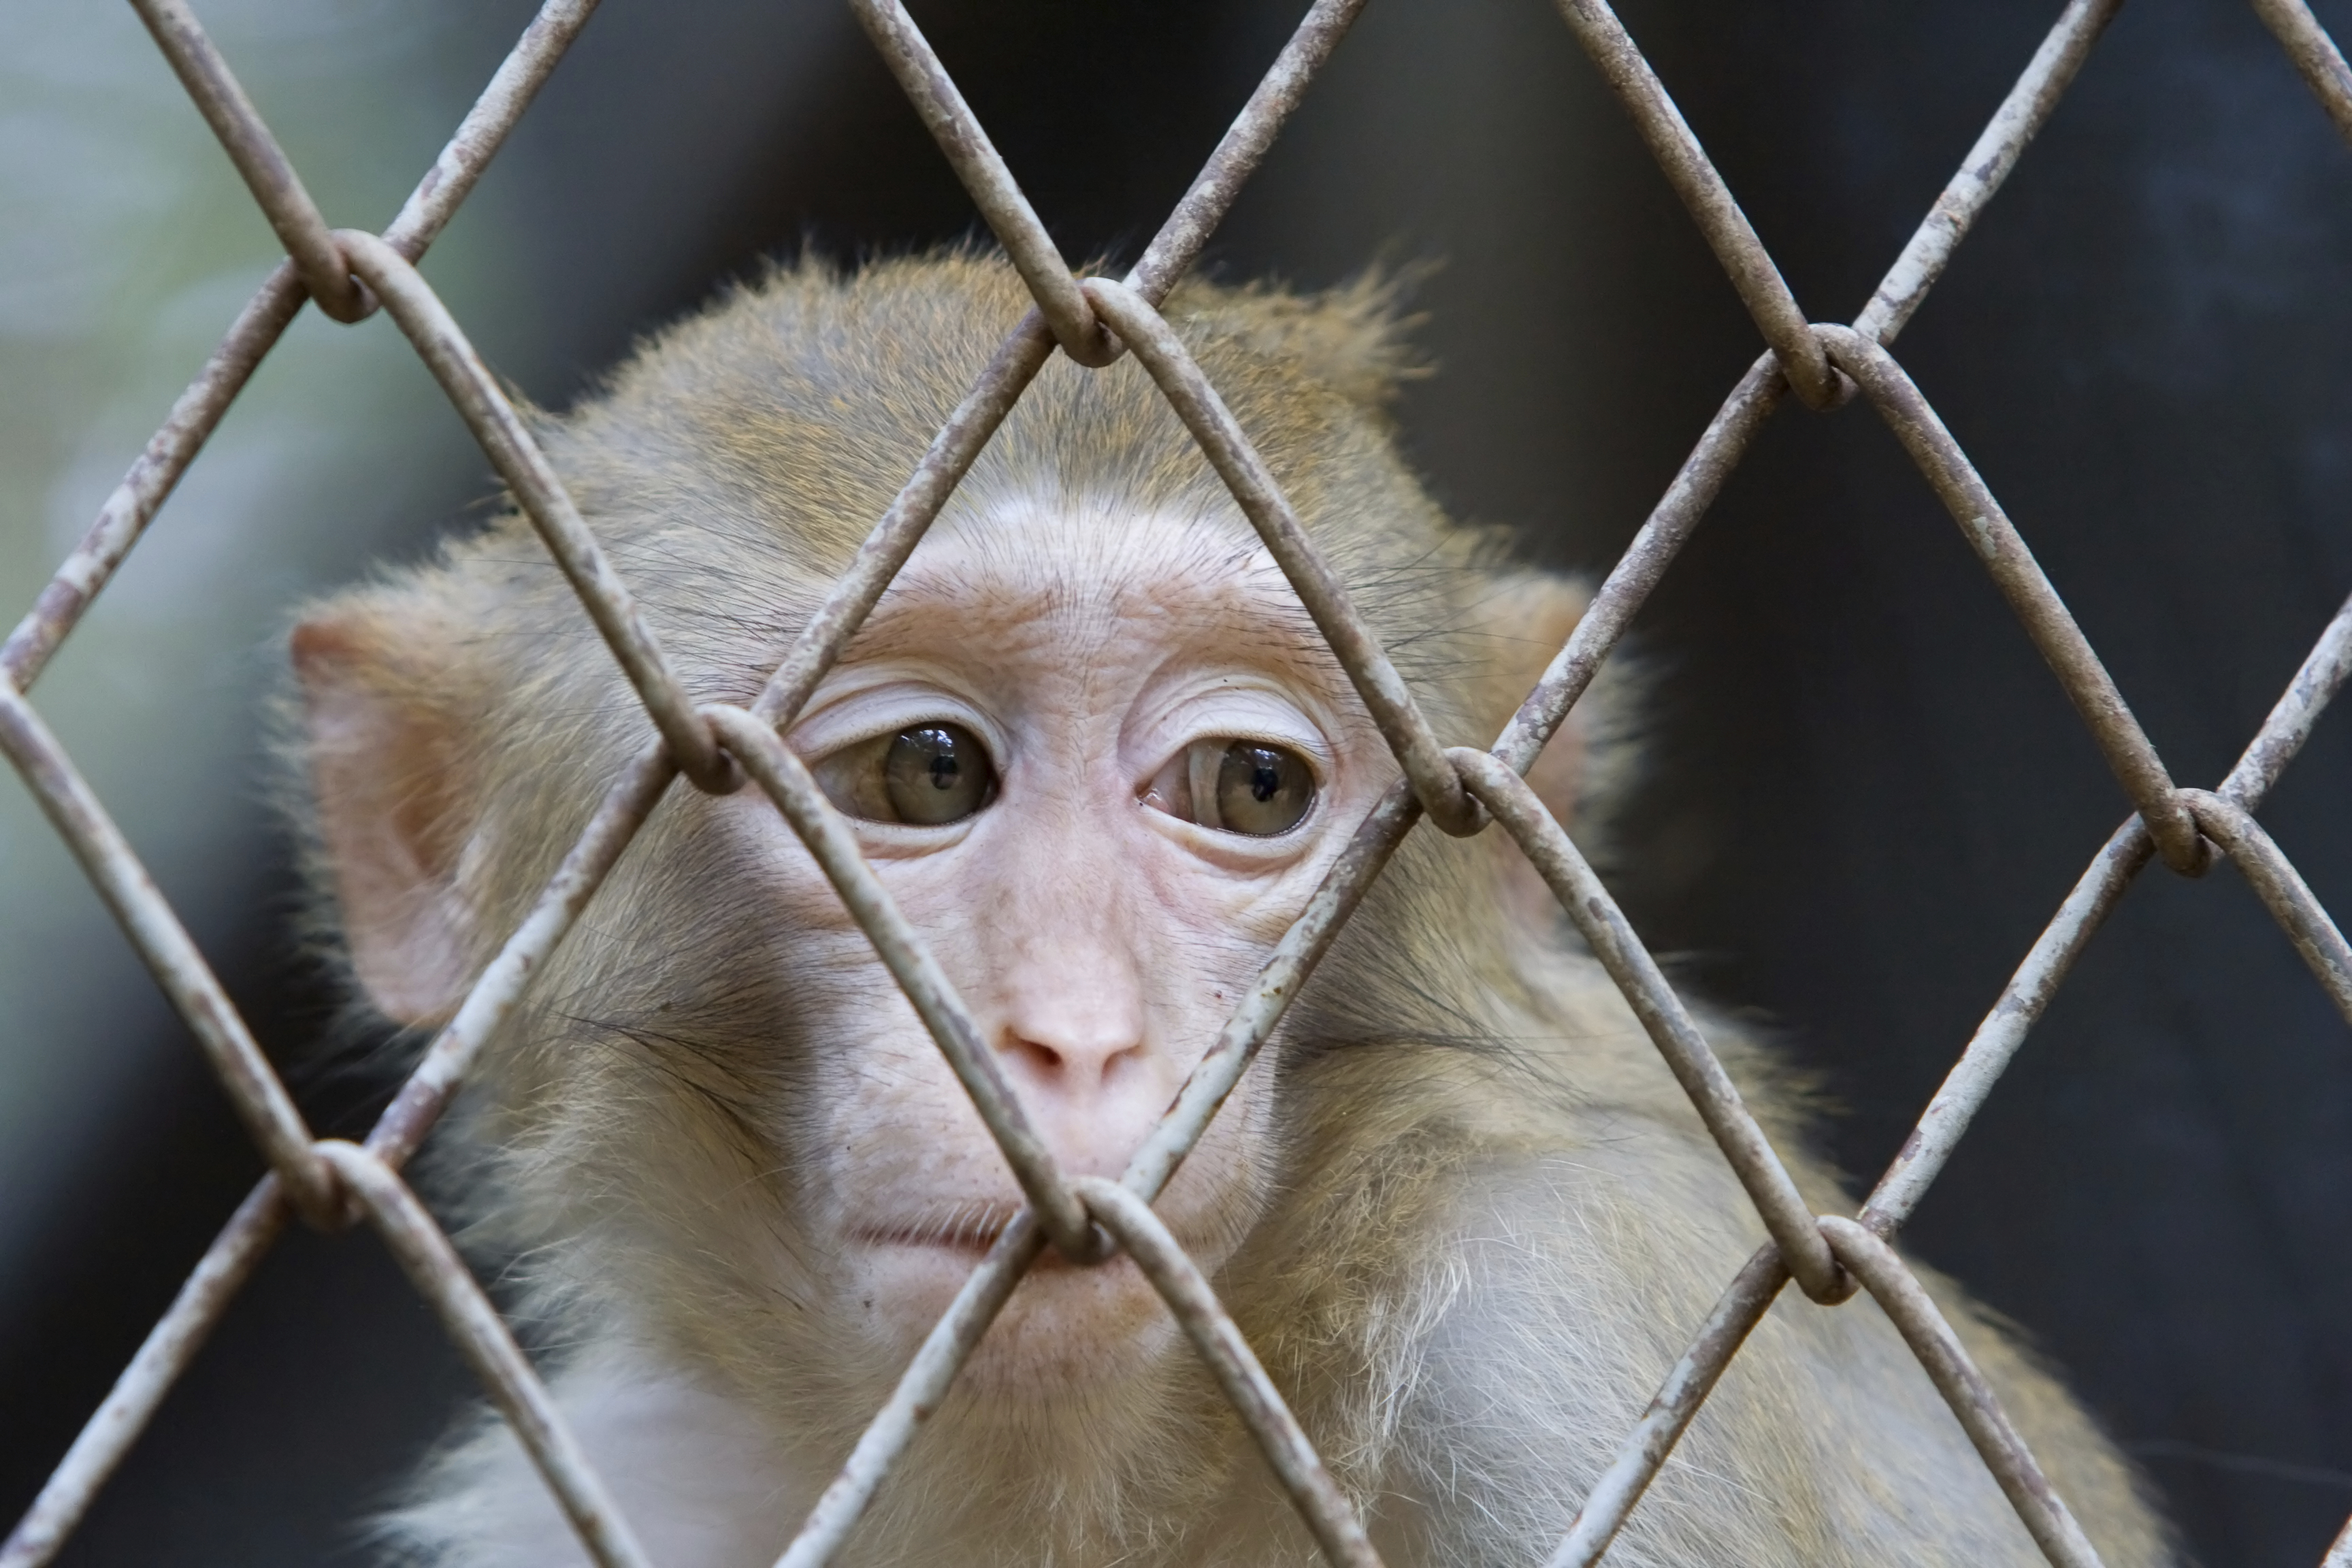 monkey_caged_sad.jpg